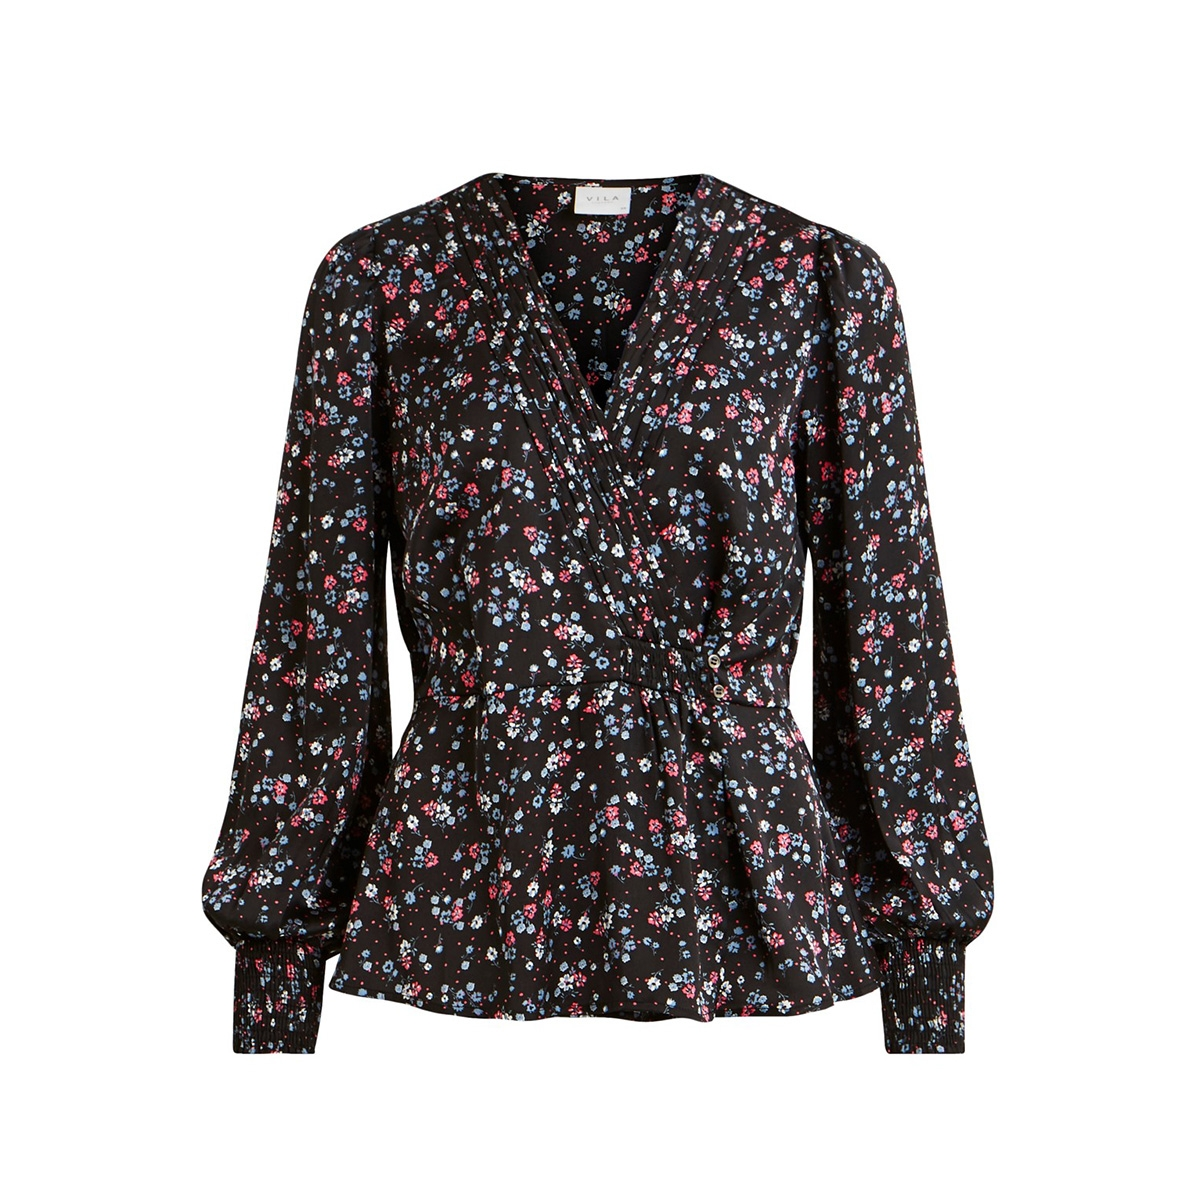 vidago l/s top 14056643 vila blouse black/flowers